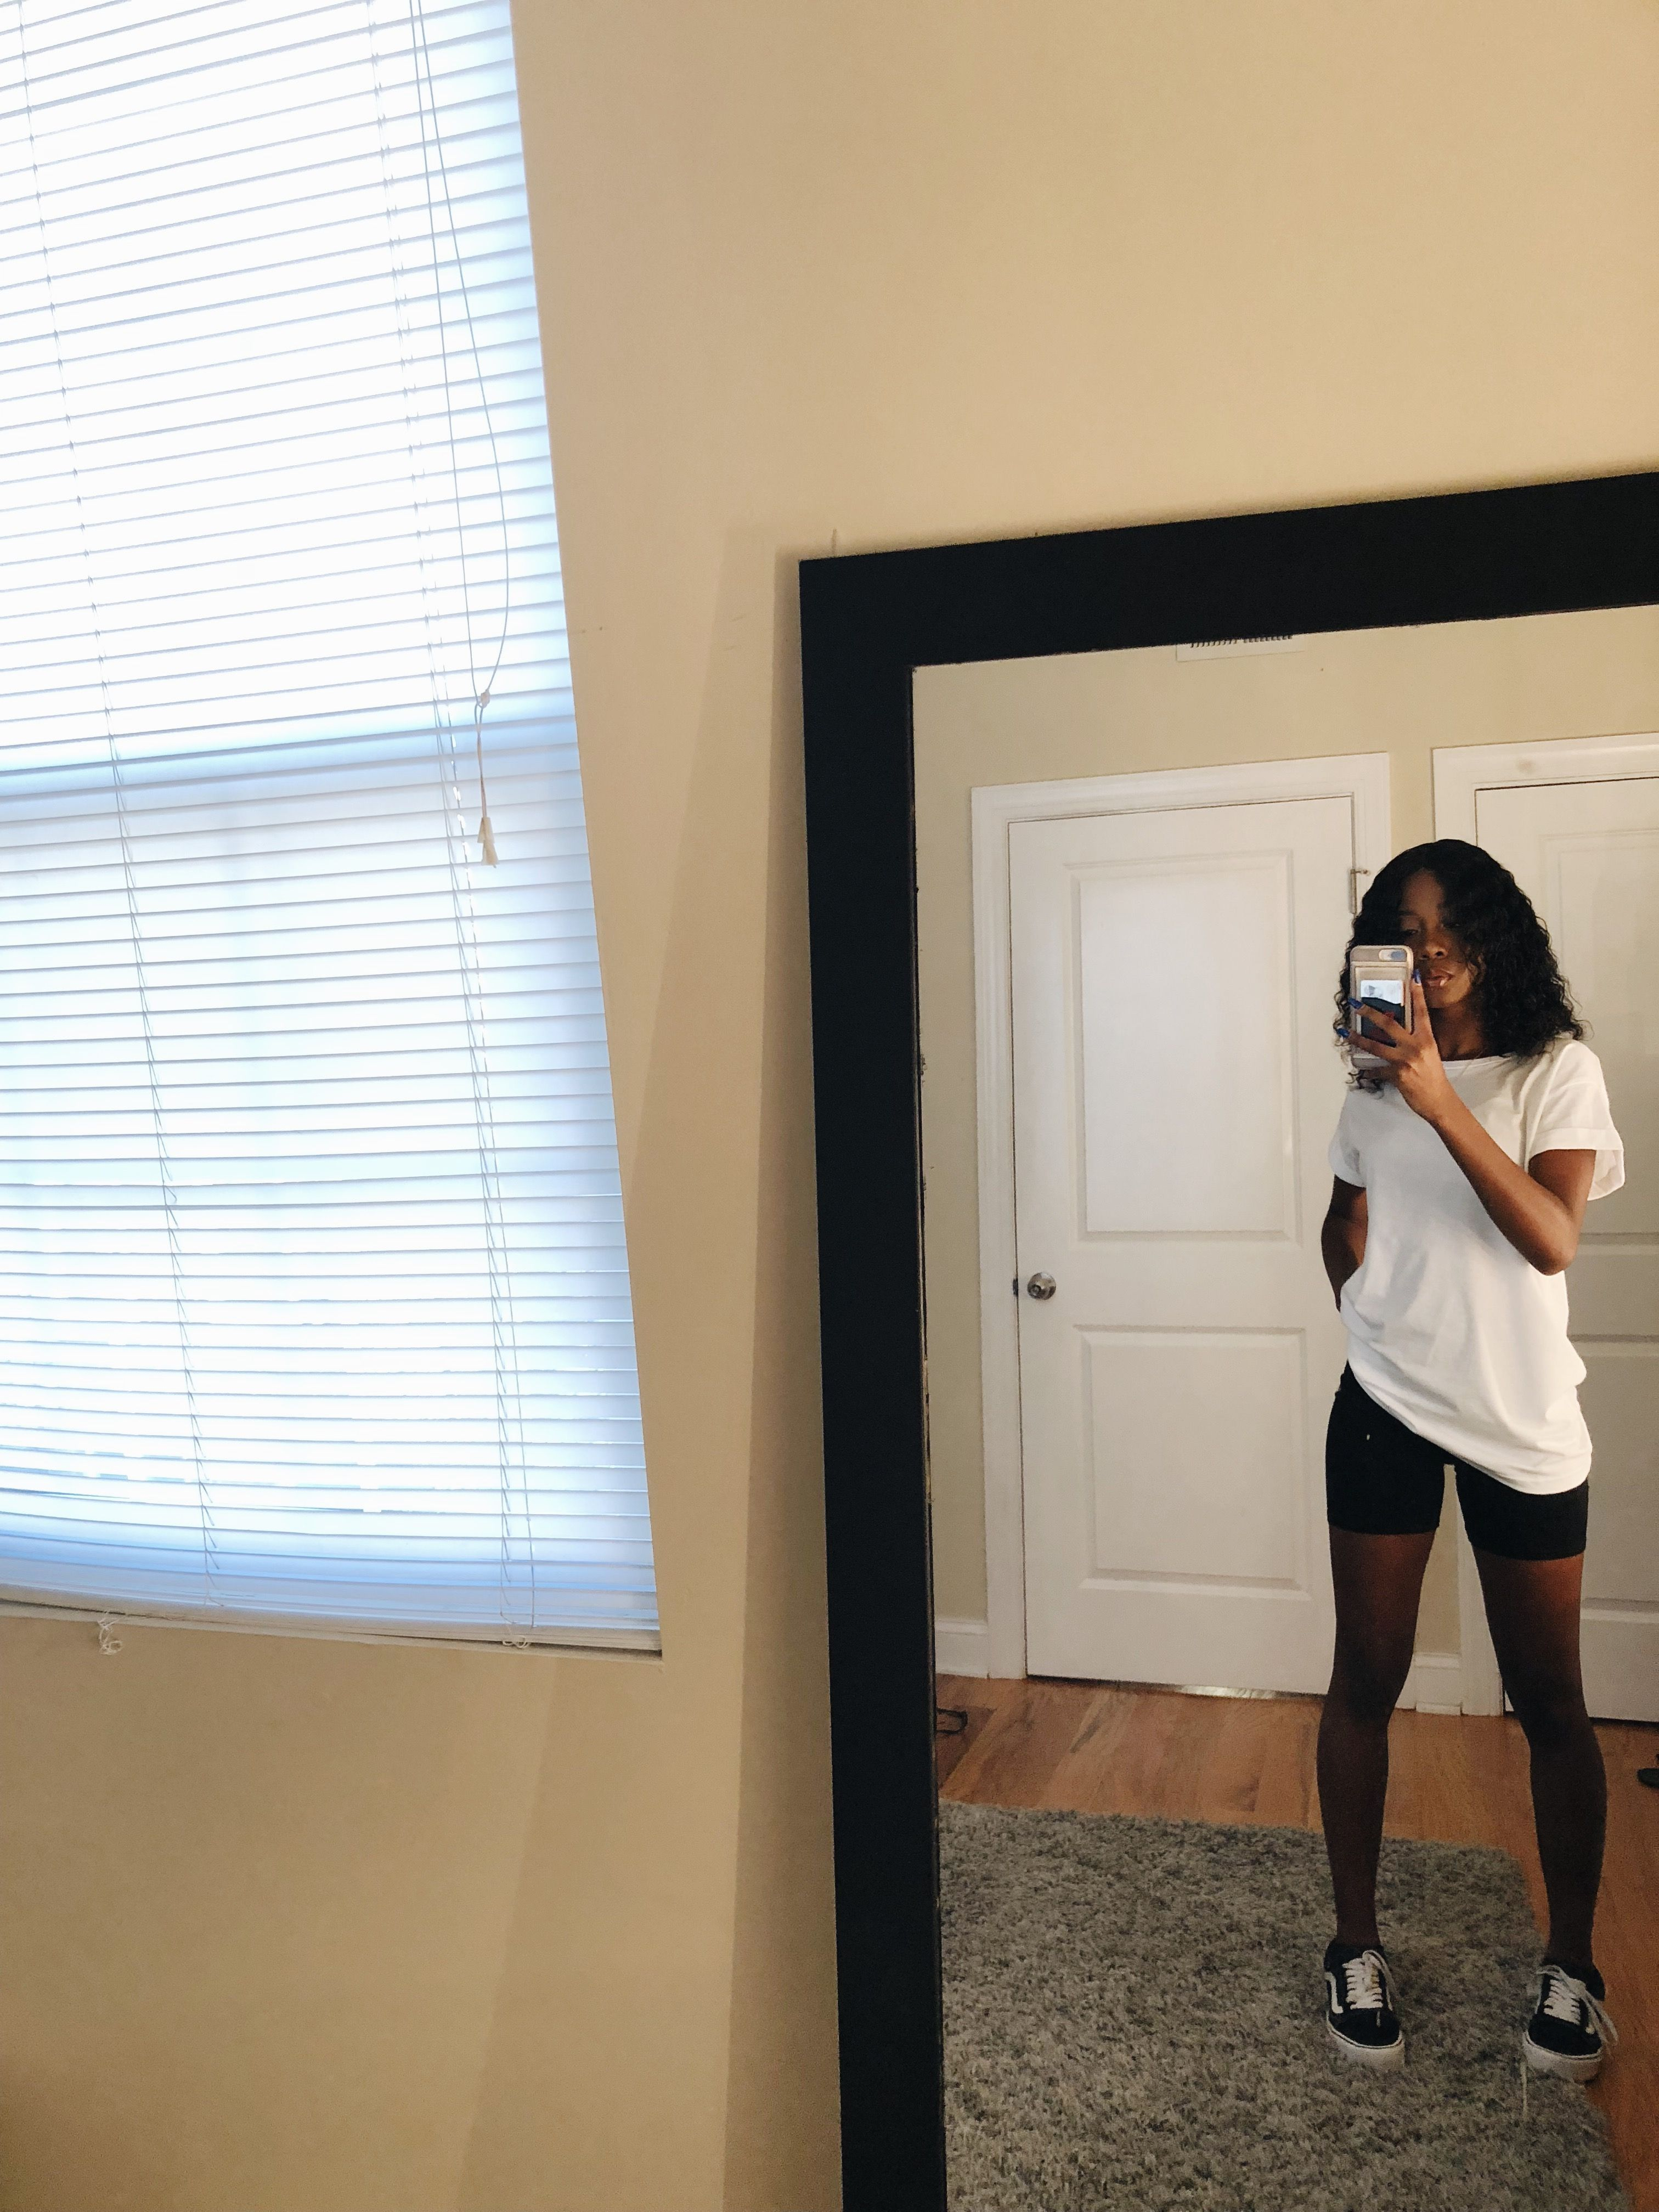 Simple vans outfit oversized white shirt biker shorts outfit